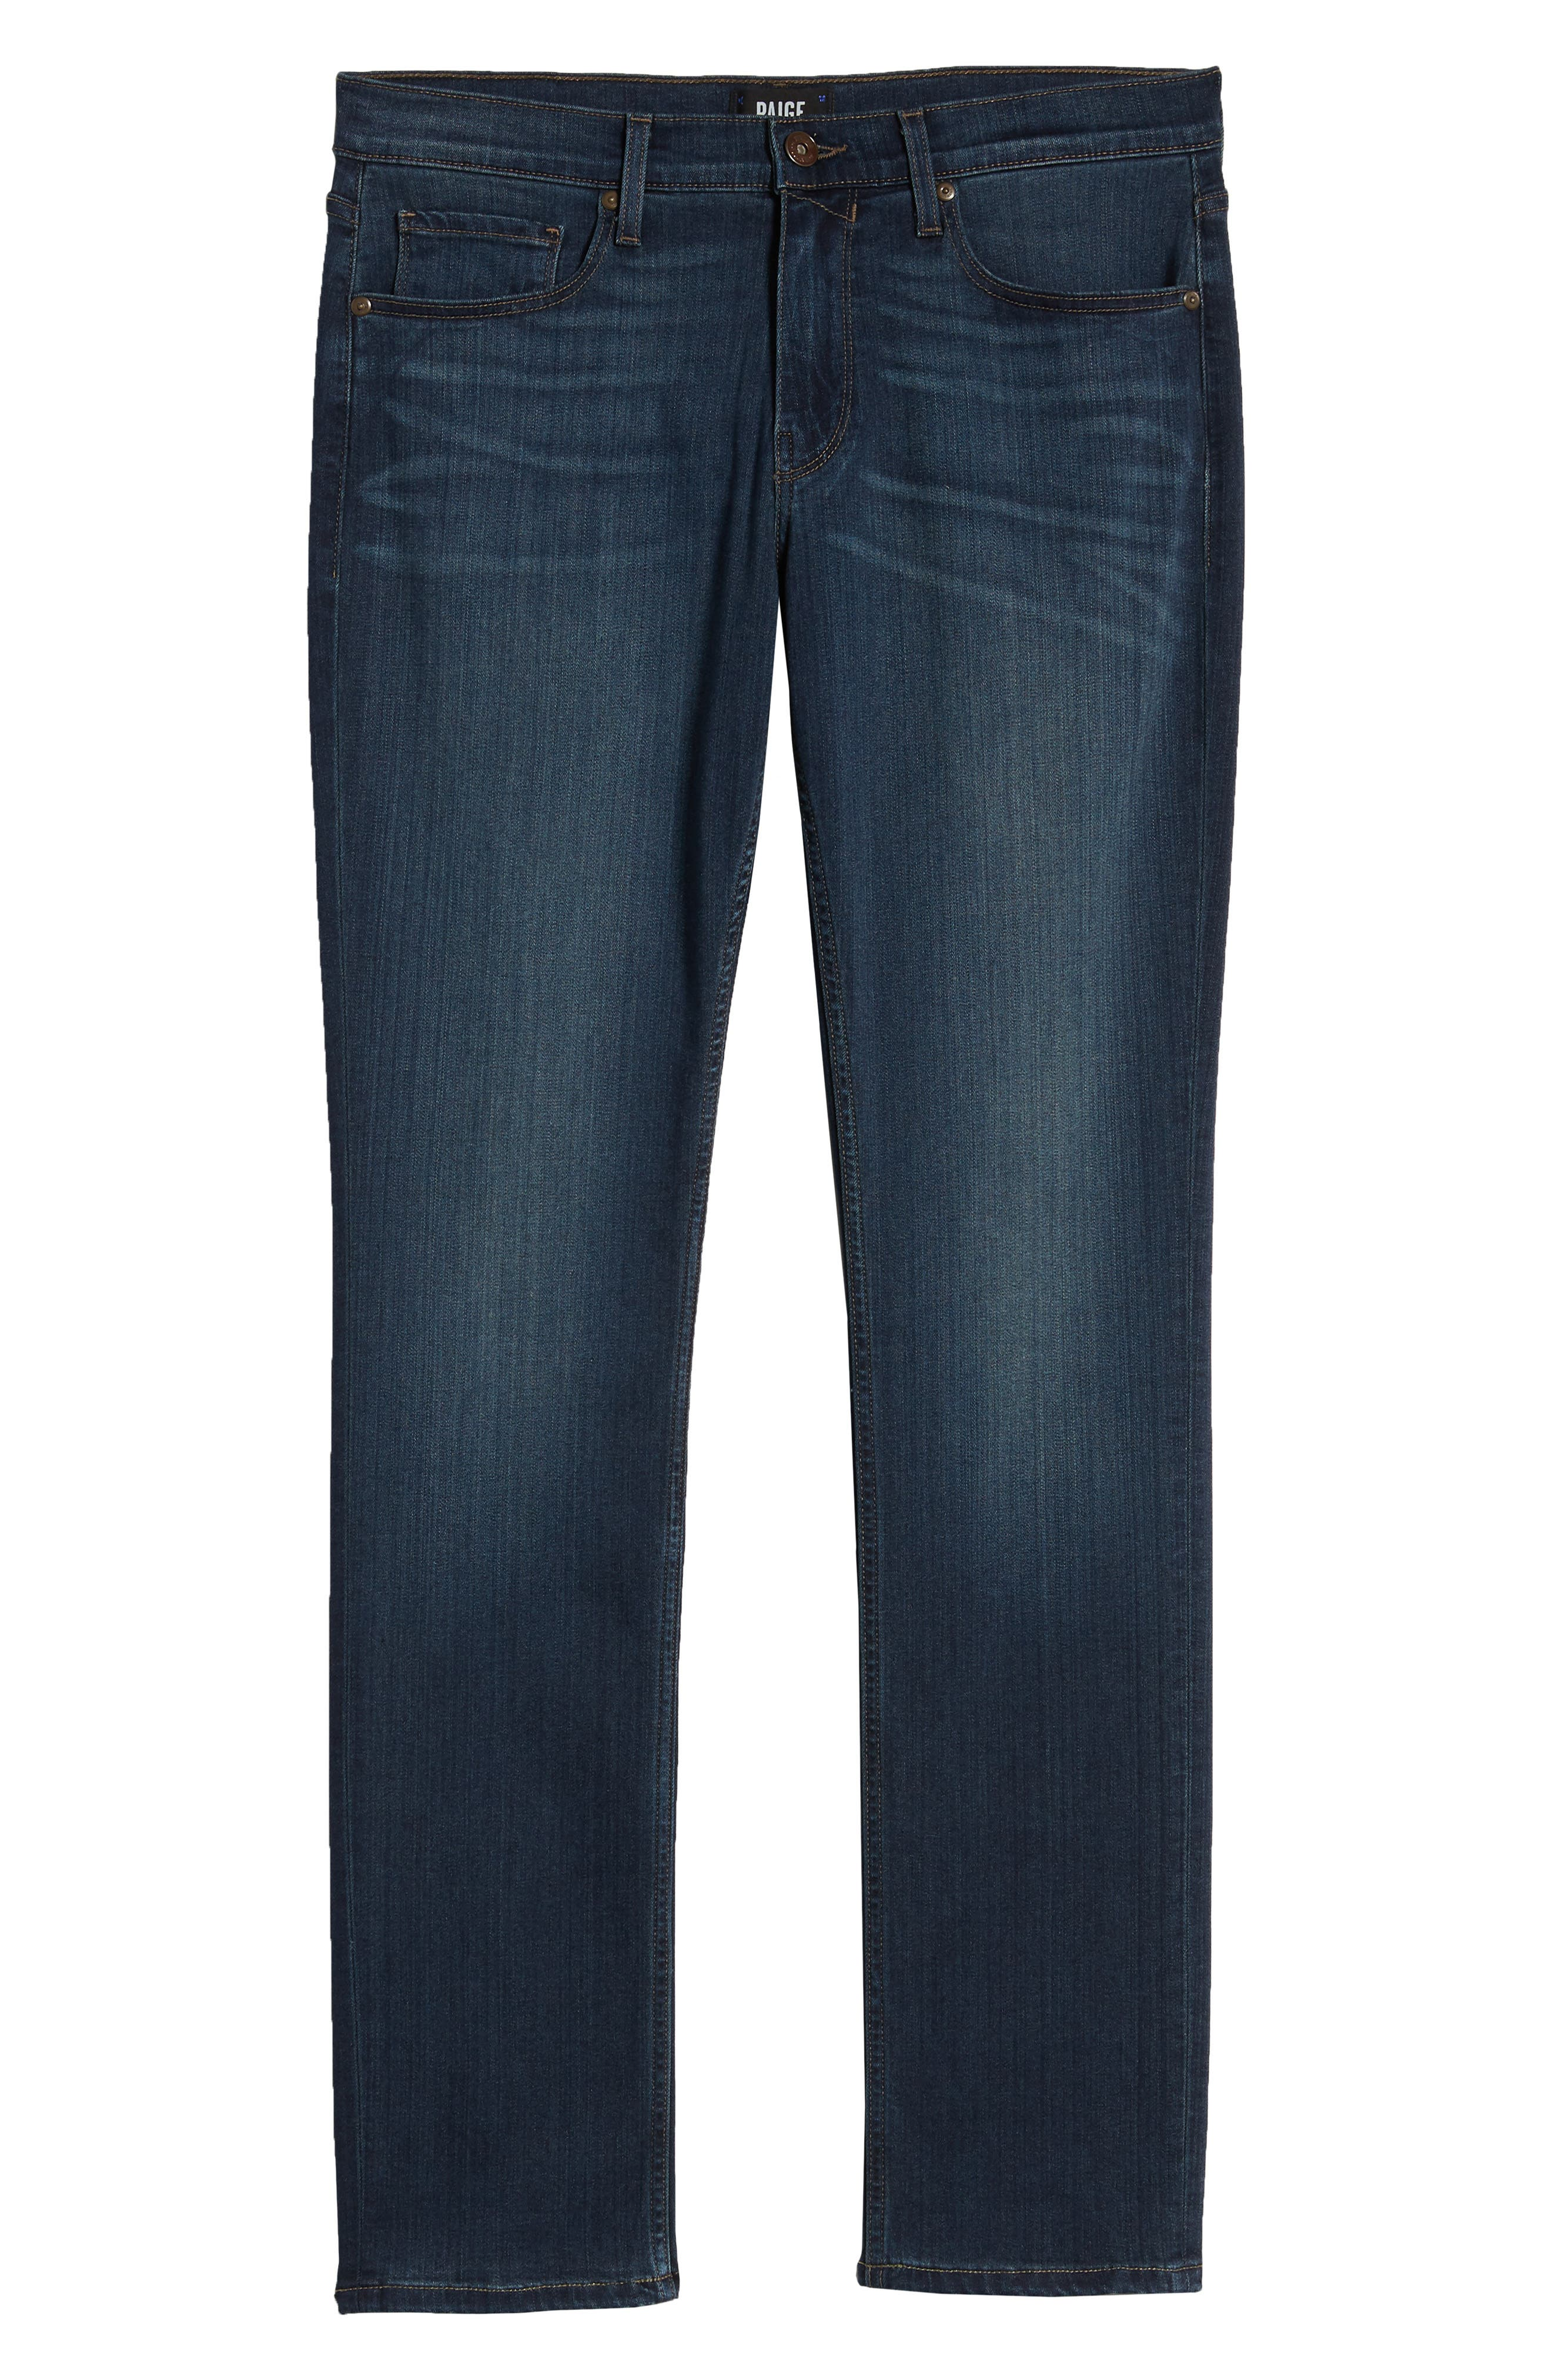 PAIGE, 'Federal' Slim Straight Leg Jeans, Alternate thumbnail 8, color, BLAKELY